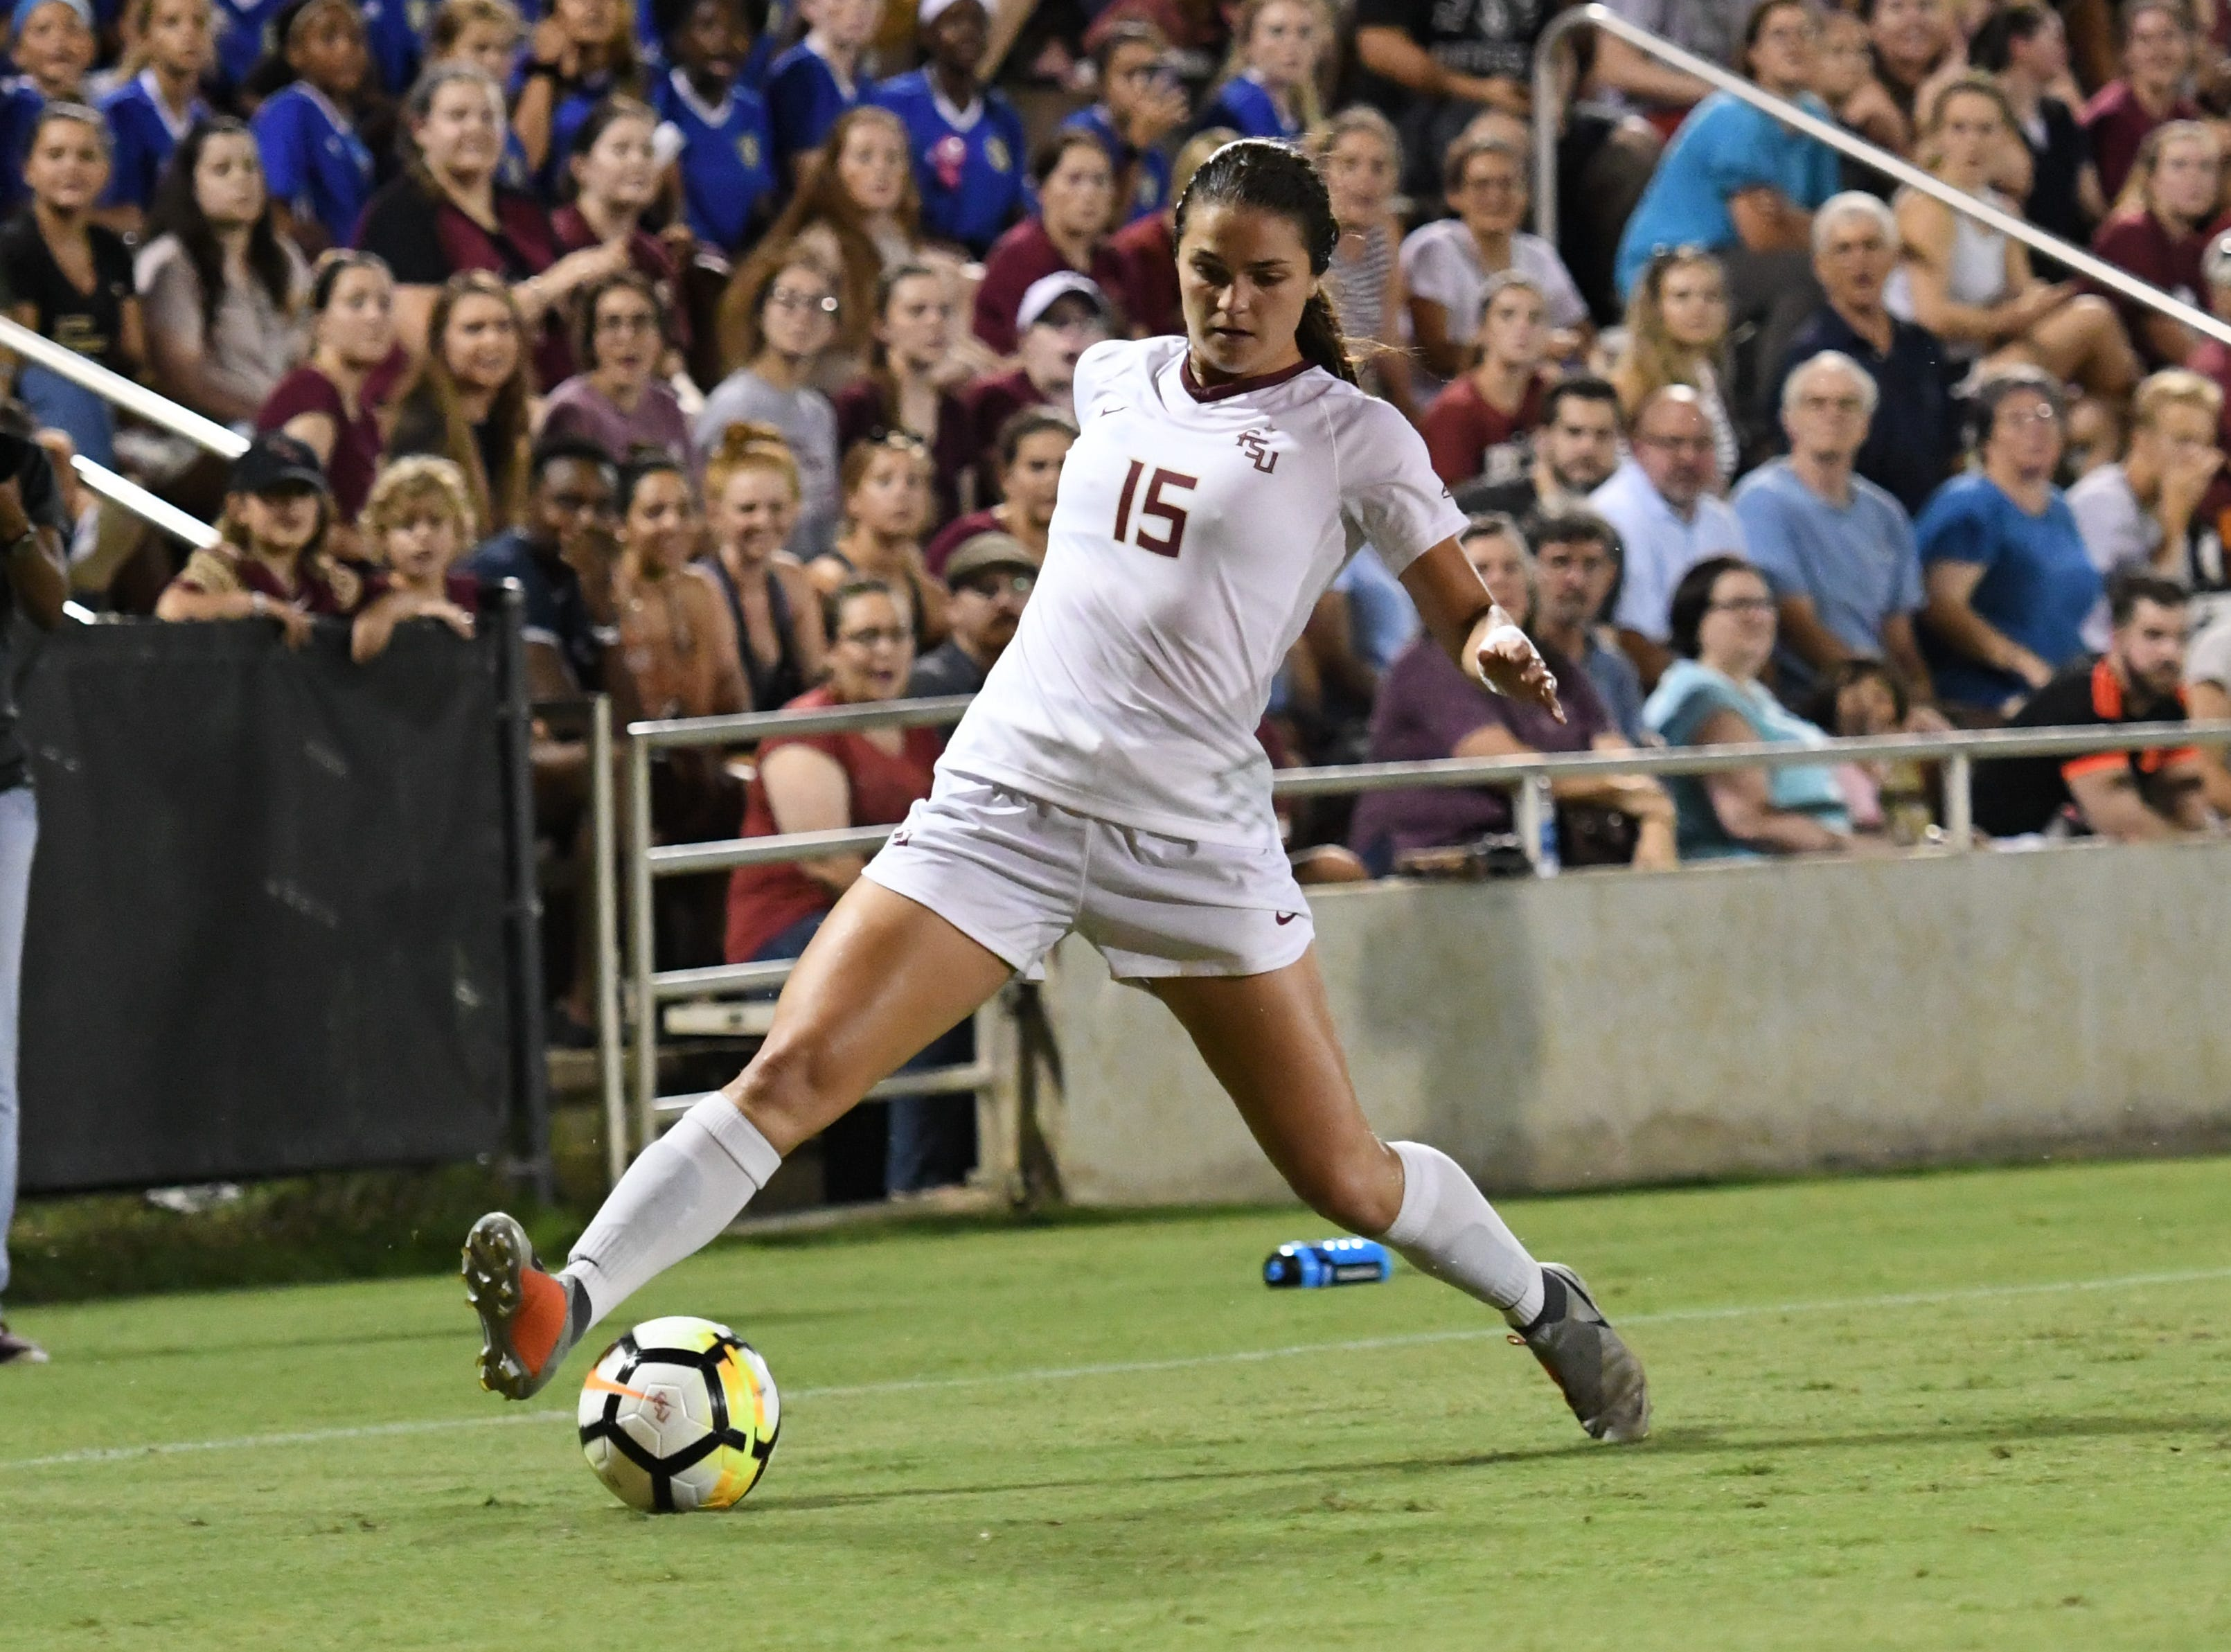 FSU senior midfielder Olivia Bergau (15) stopping the ball during the second half of FSU's game against UNC on September 14th at the Seminole Soccer Complex.